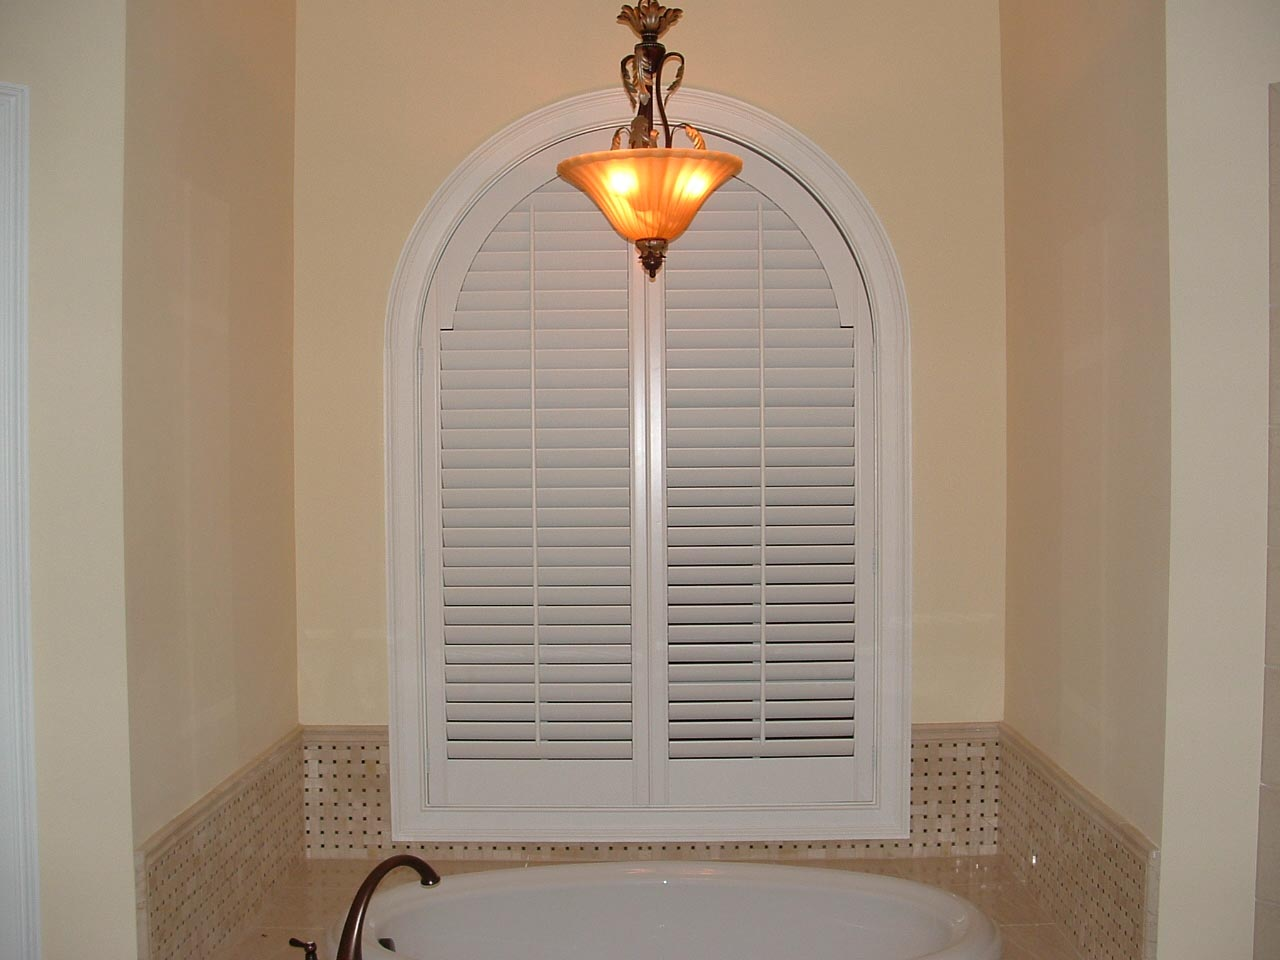 Blinds for Arched Top Windows